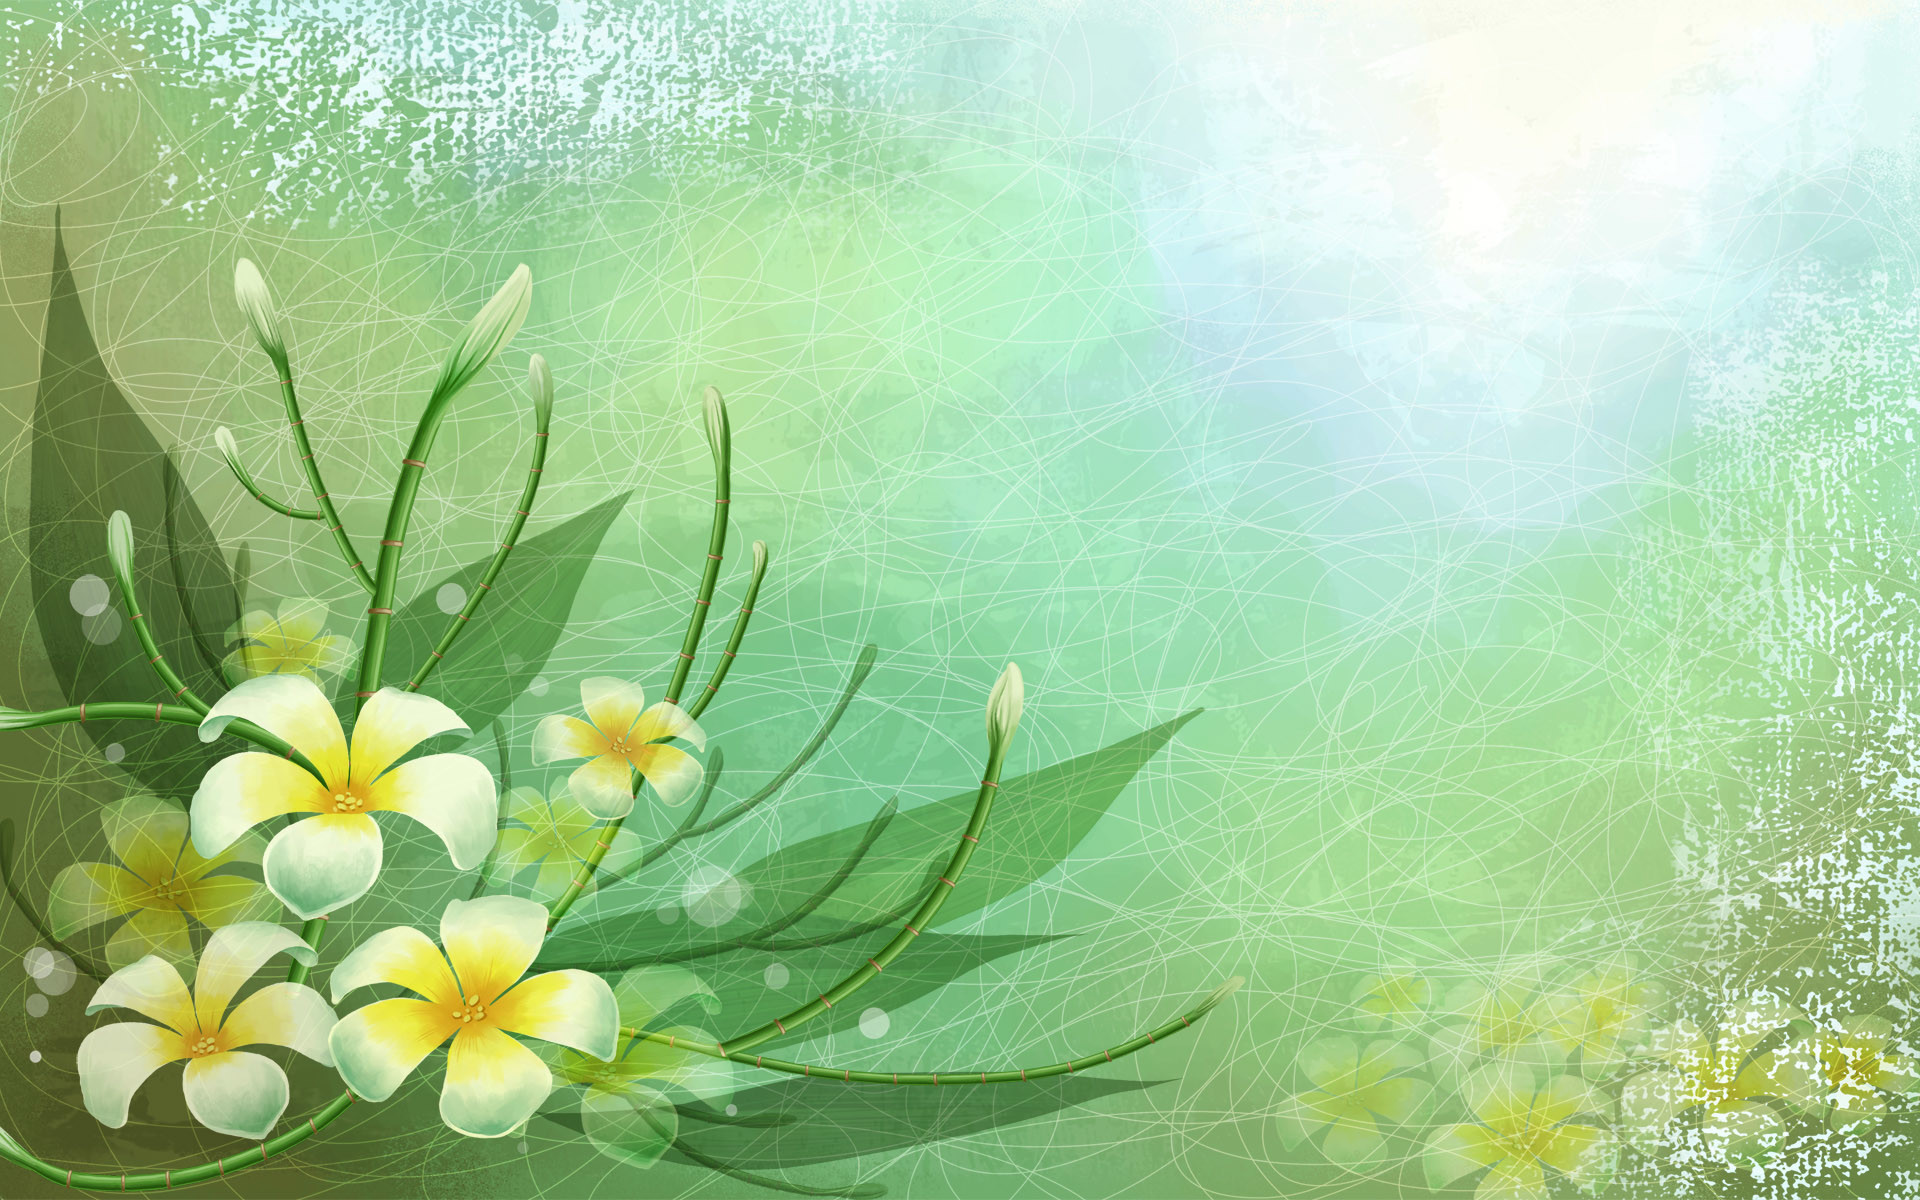 1920x1200 Vector Art Images Flower Cool Background Wallpapers Resolution : Filesize :  kB, Added on December Tagged : vector art